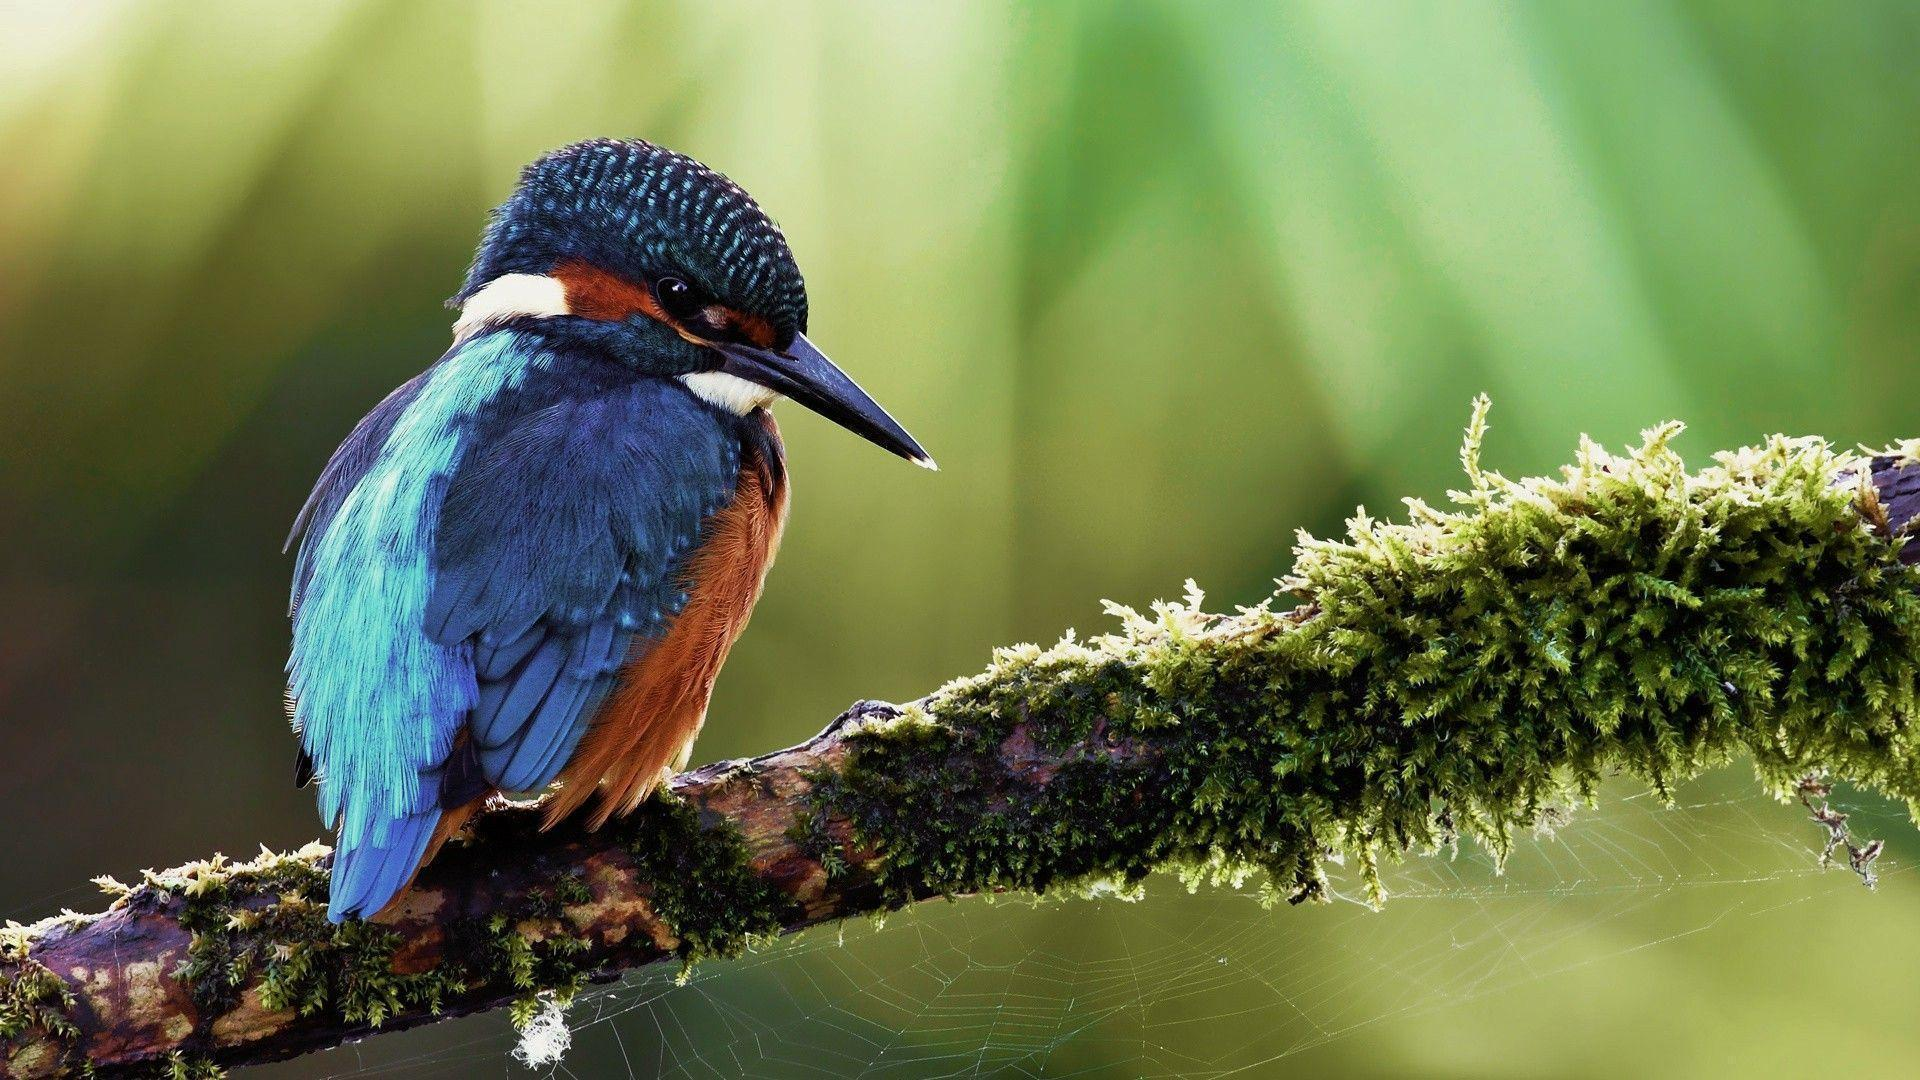 kingfisher wallpapers hd - photo #2